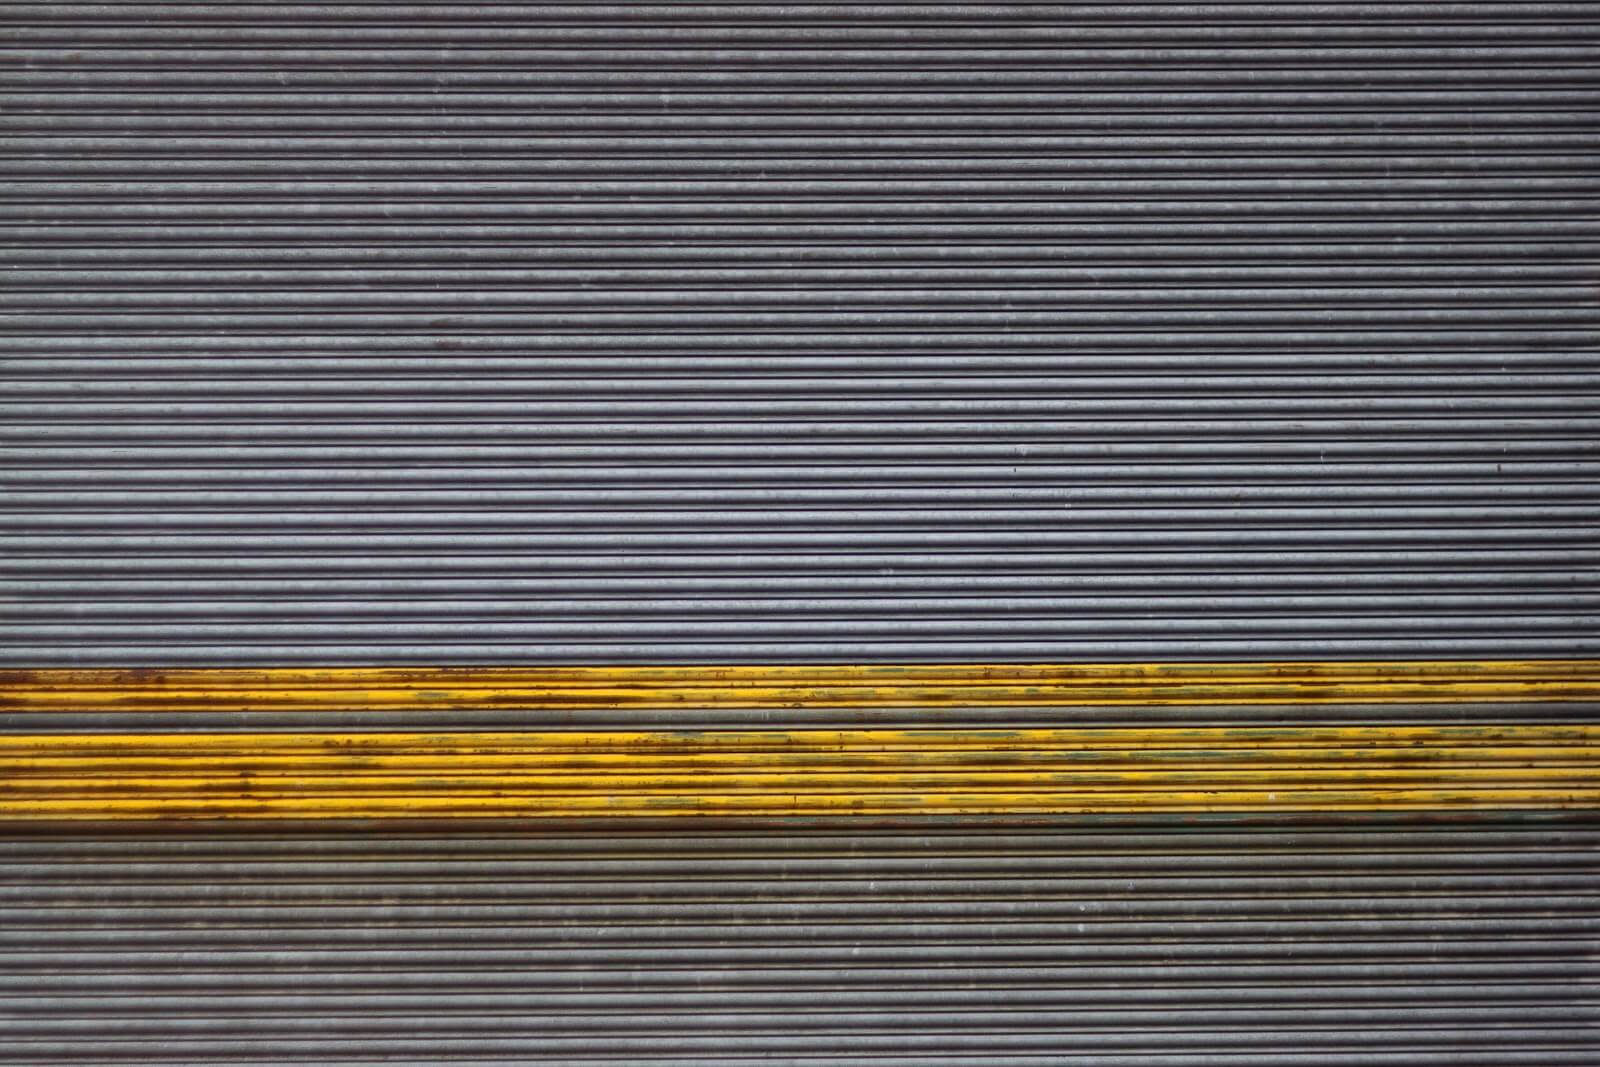 Roller Shutters Grey Yellow Stripe